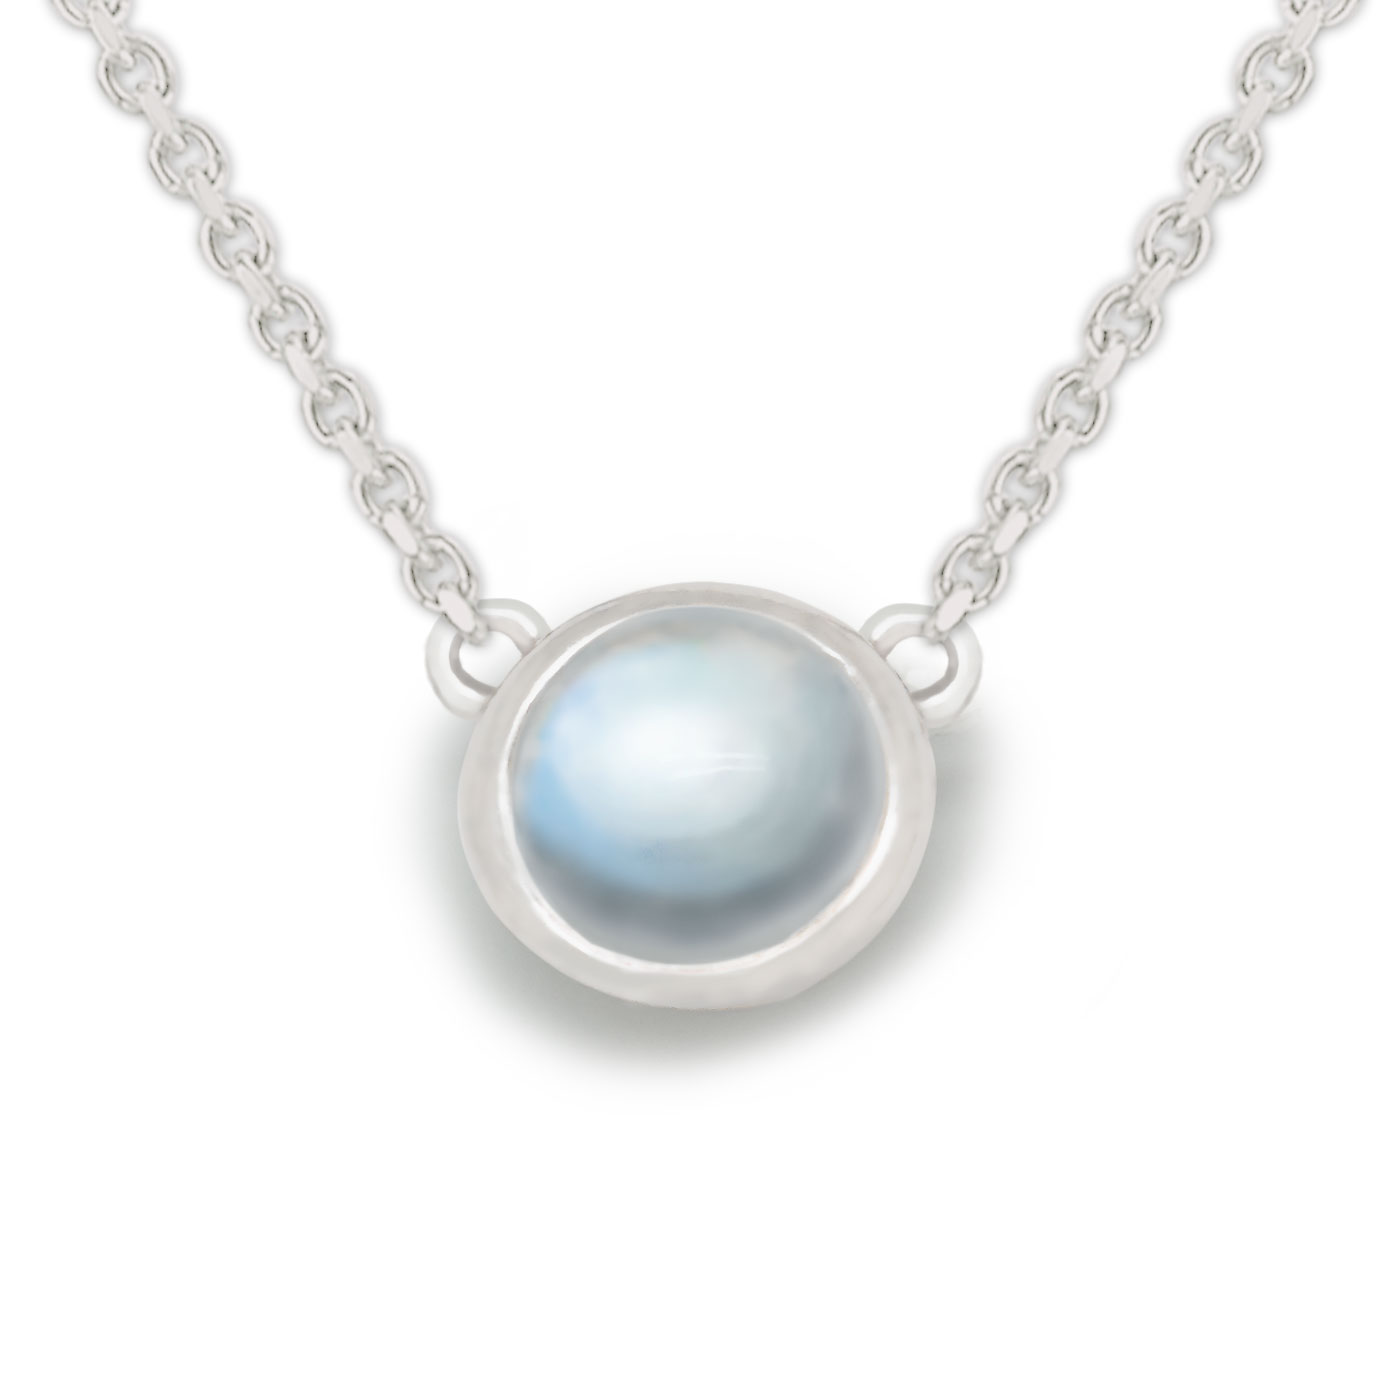 Concise Round 925 Sterling Silver Sri Lanka Genuine Moonstone Necklace free shipping 3000 users complete access control system kit set with electric bolt lock keypad power remote door bell exit keys